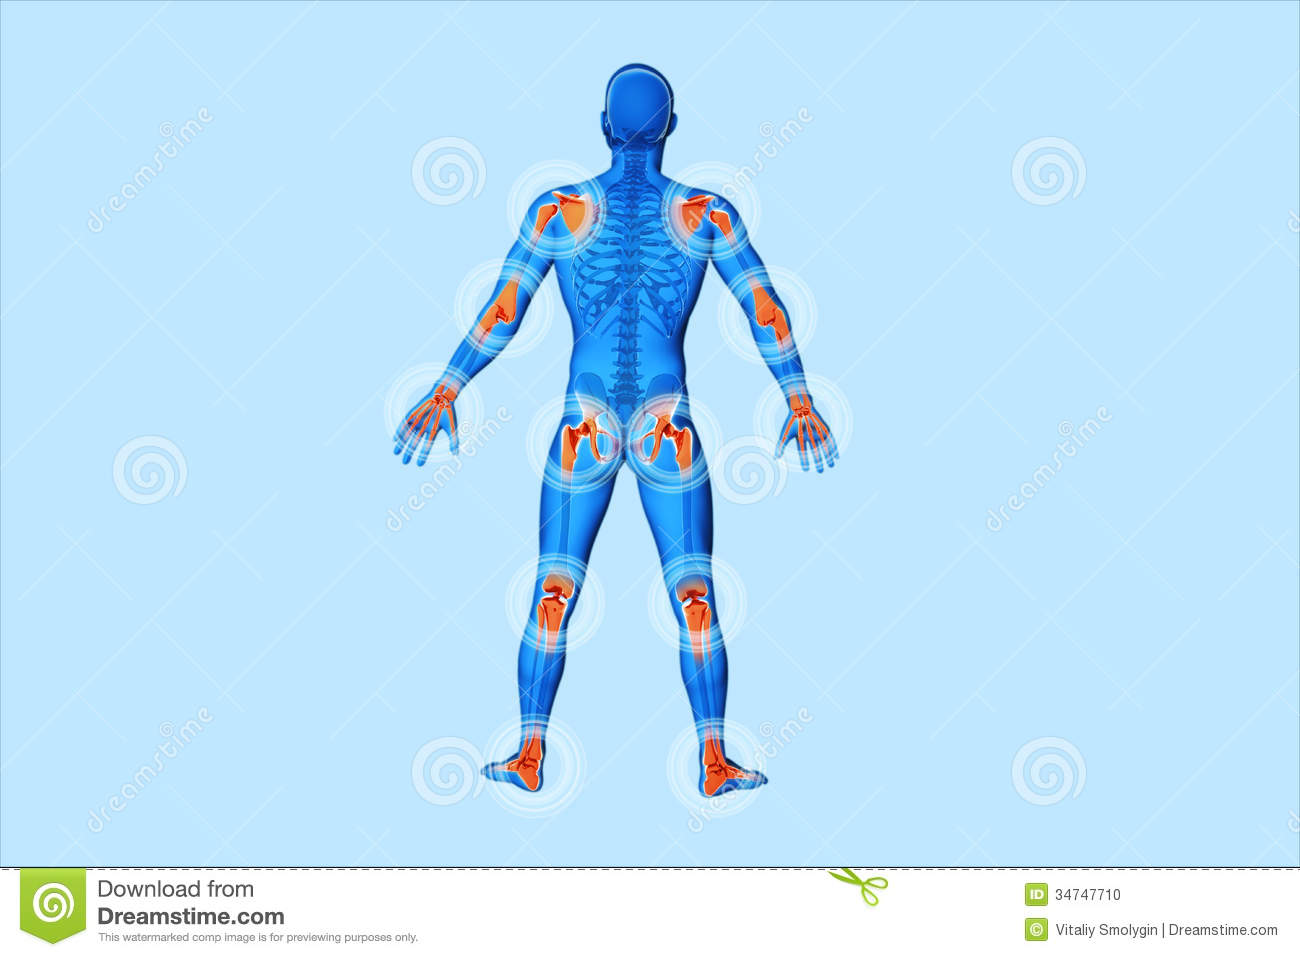 Joint pain clipart.